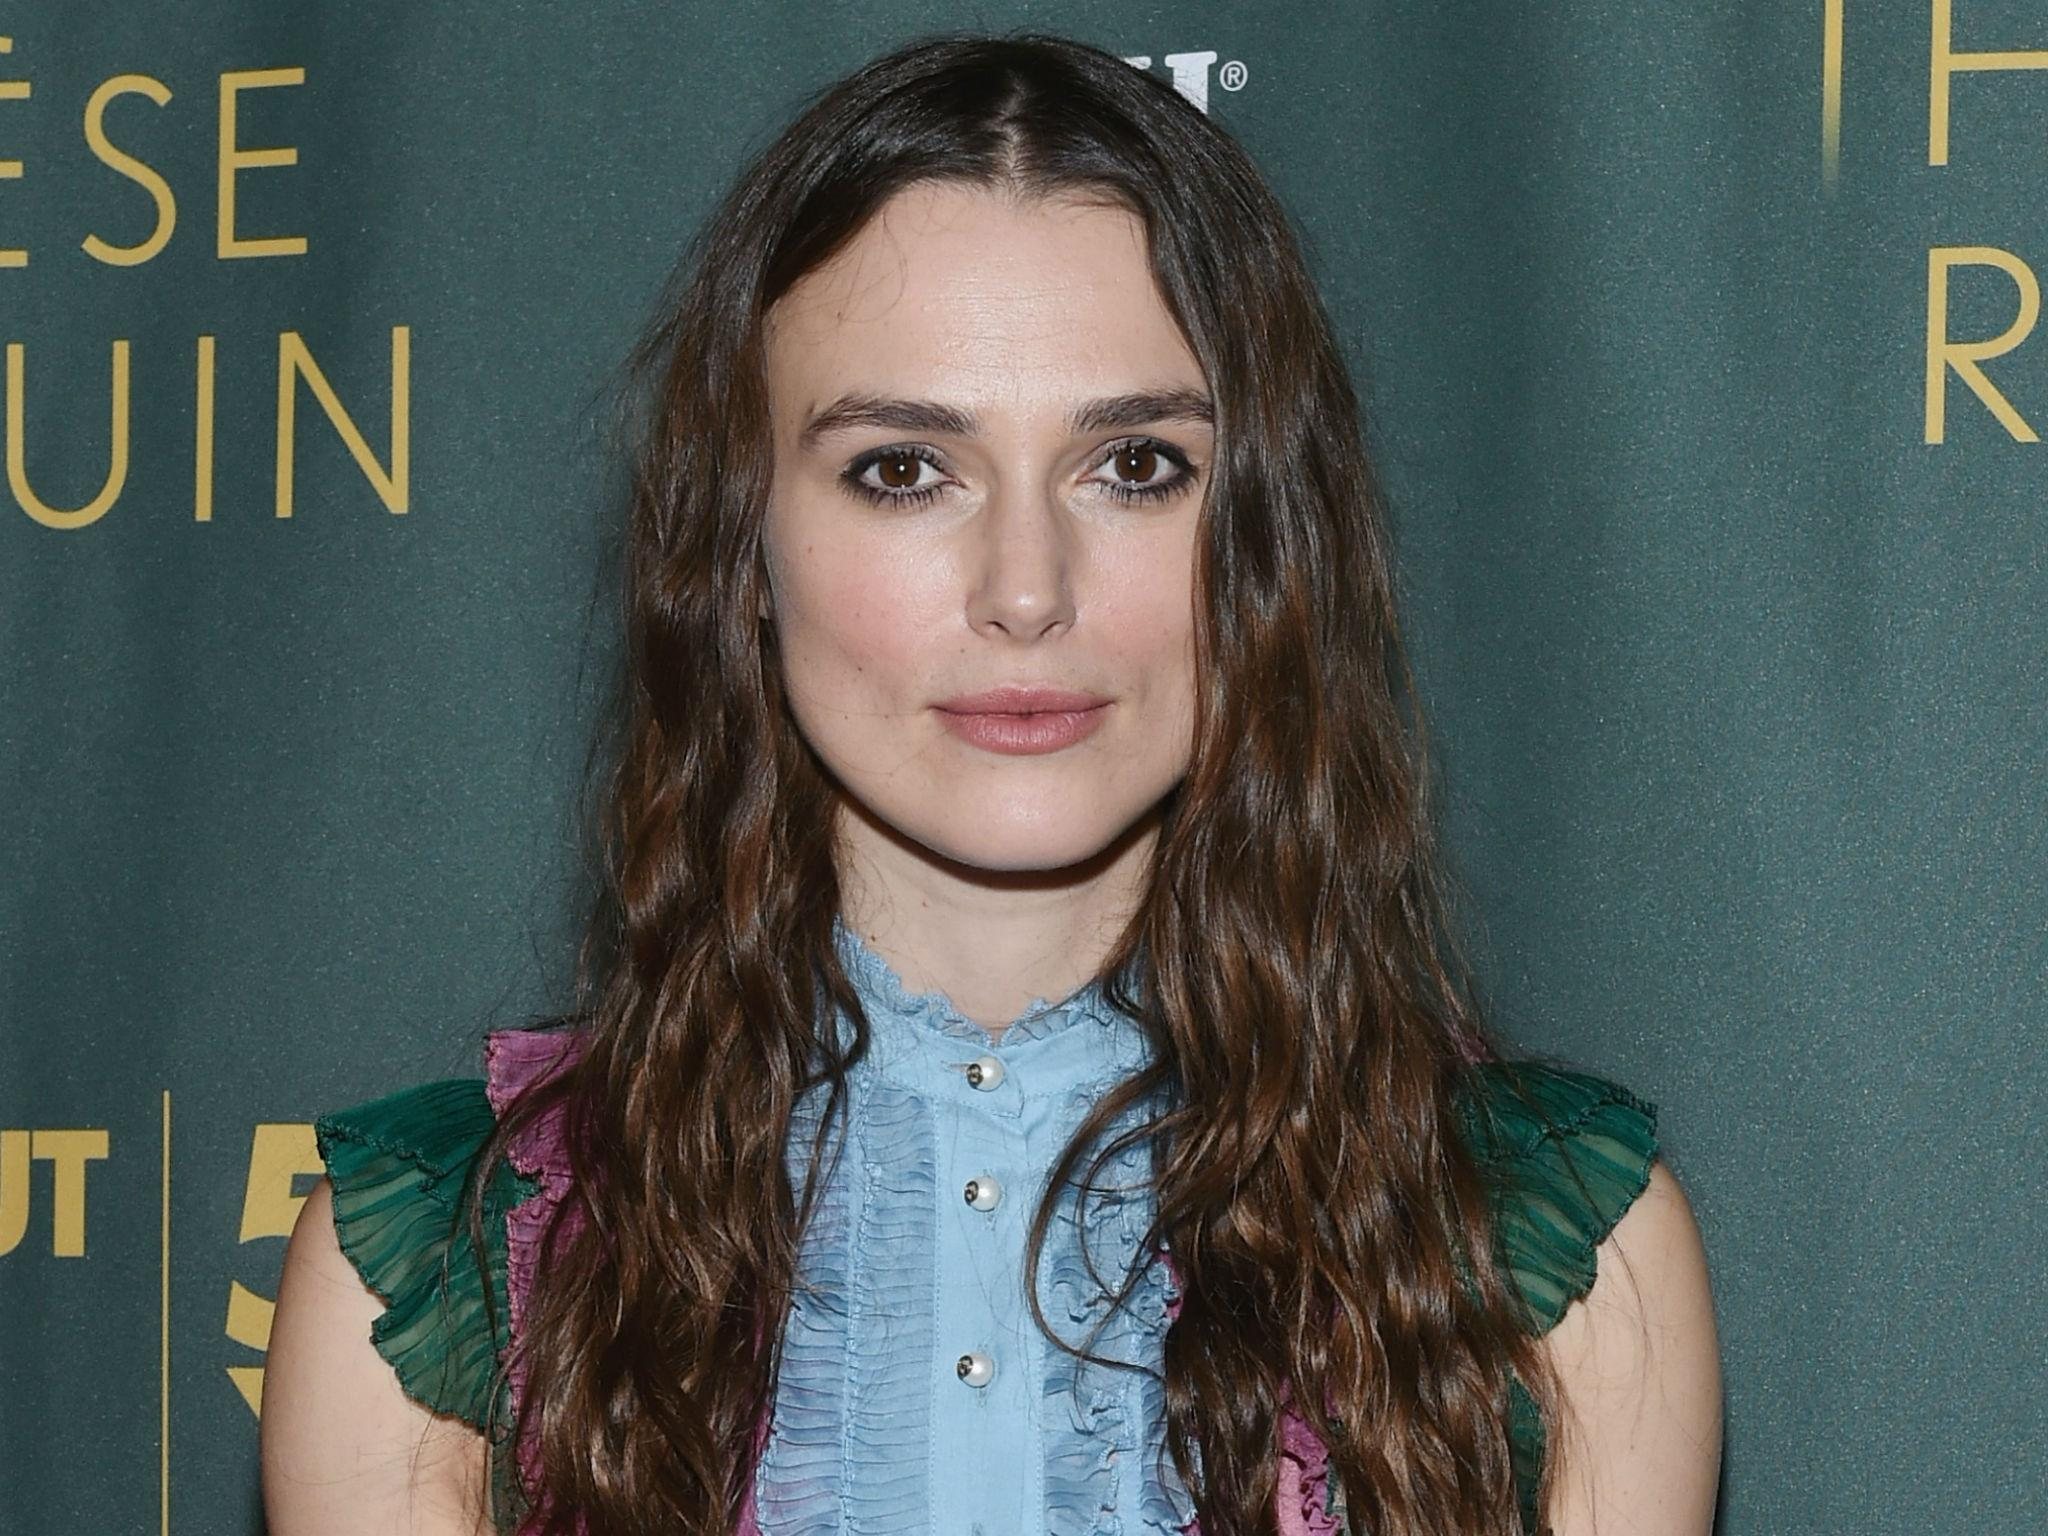 keira knightley forced to wear wigs in films after dye made her